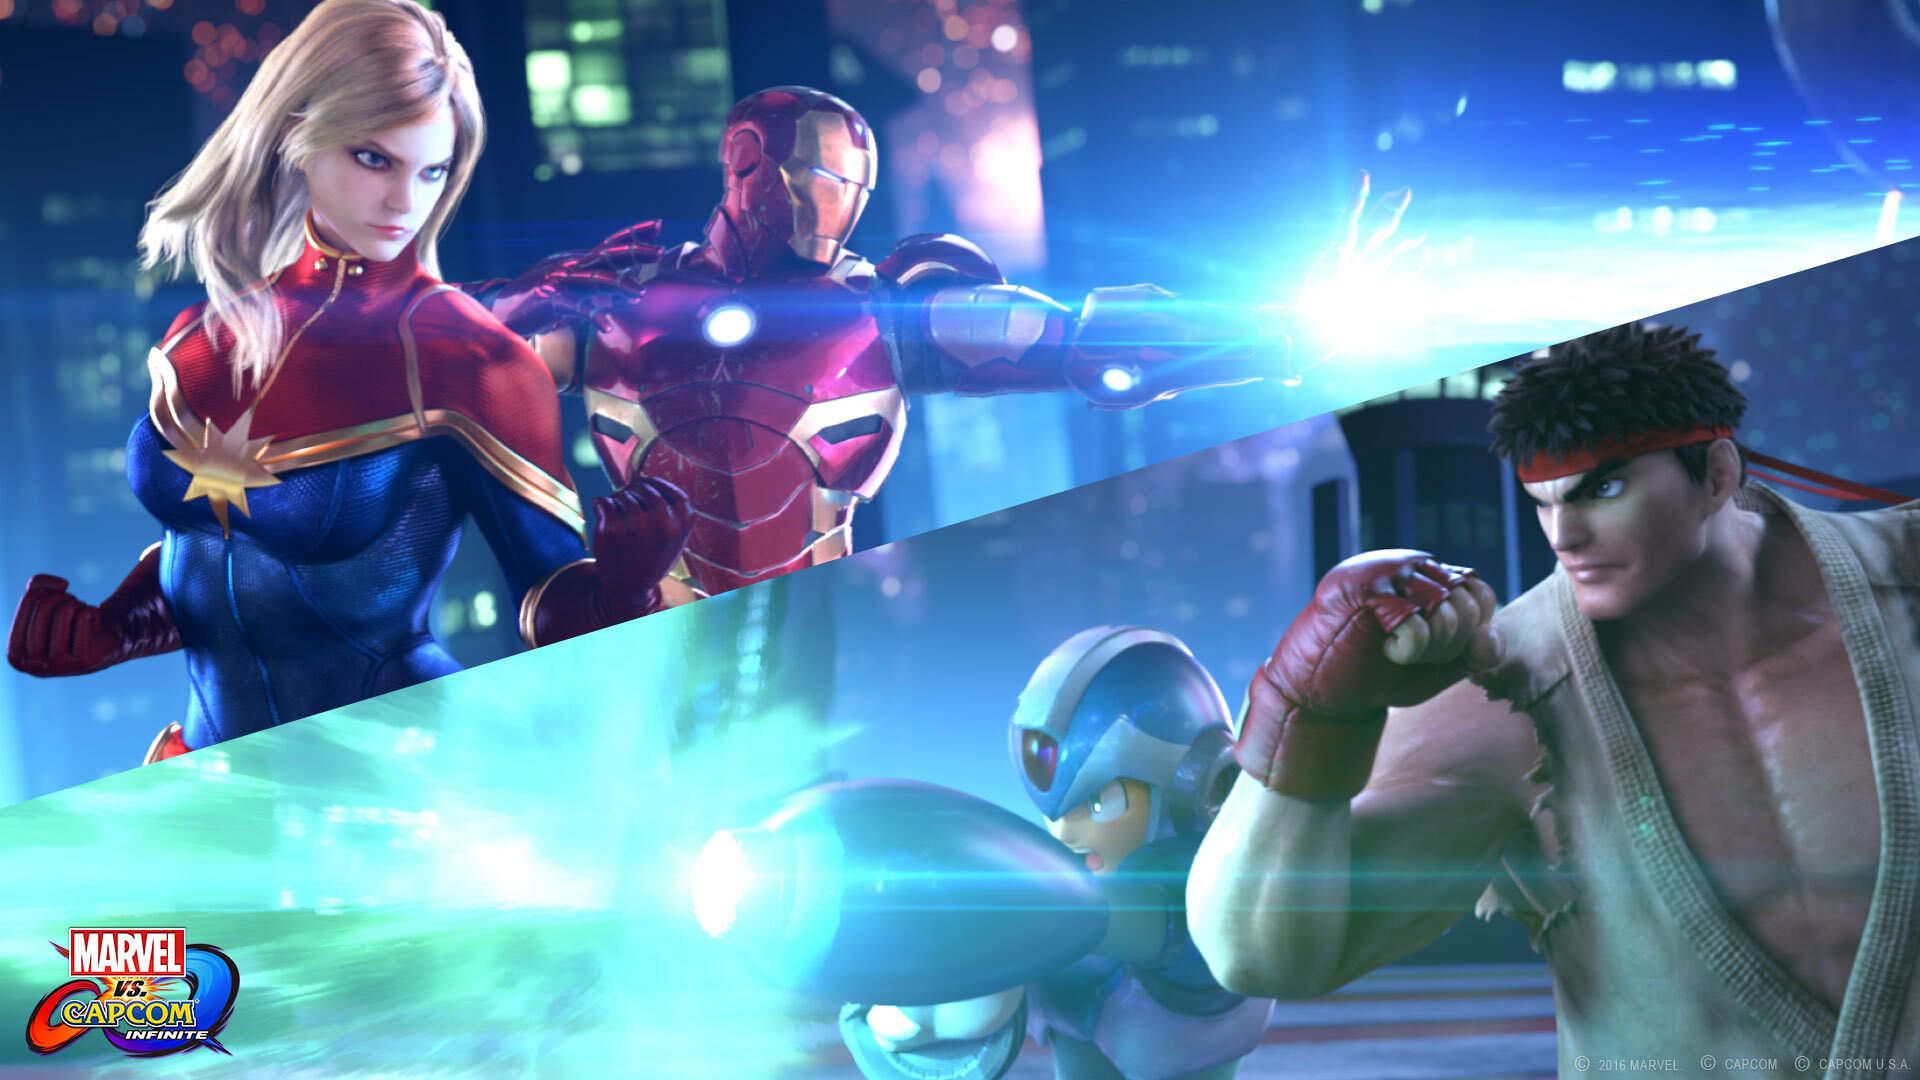 Marvel vs. Capcom: Infinite - New Story Demo, Release Date, Character Roster, Pre-Order Editions - Everything We Know